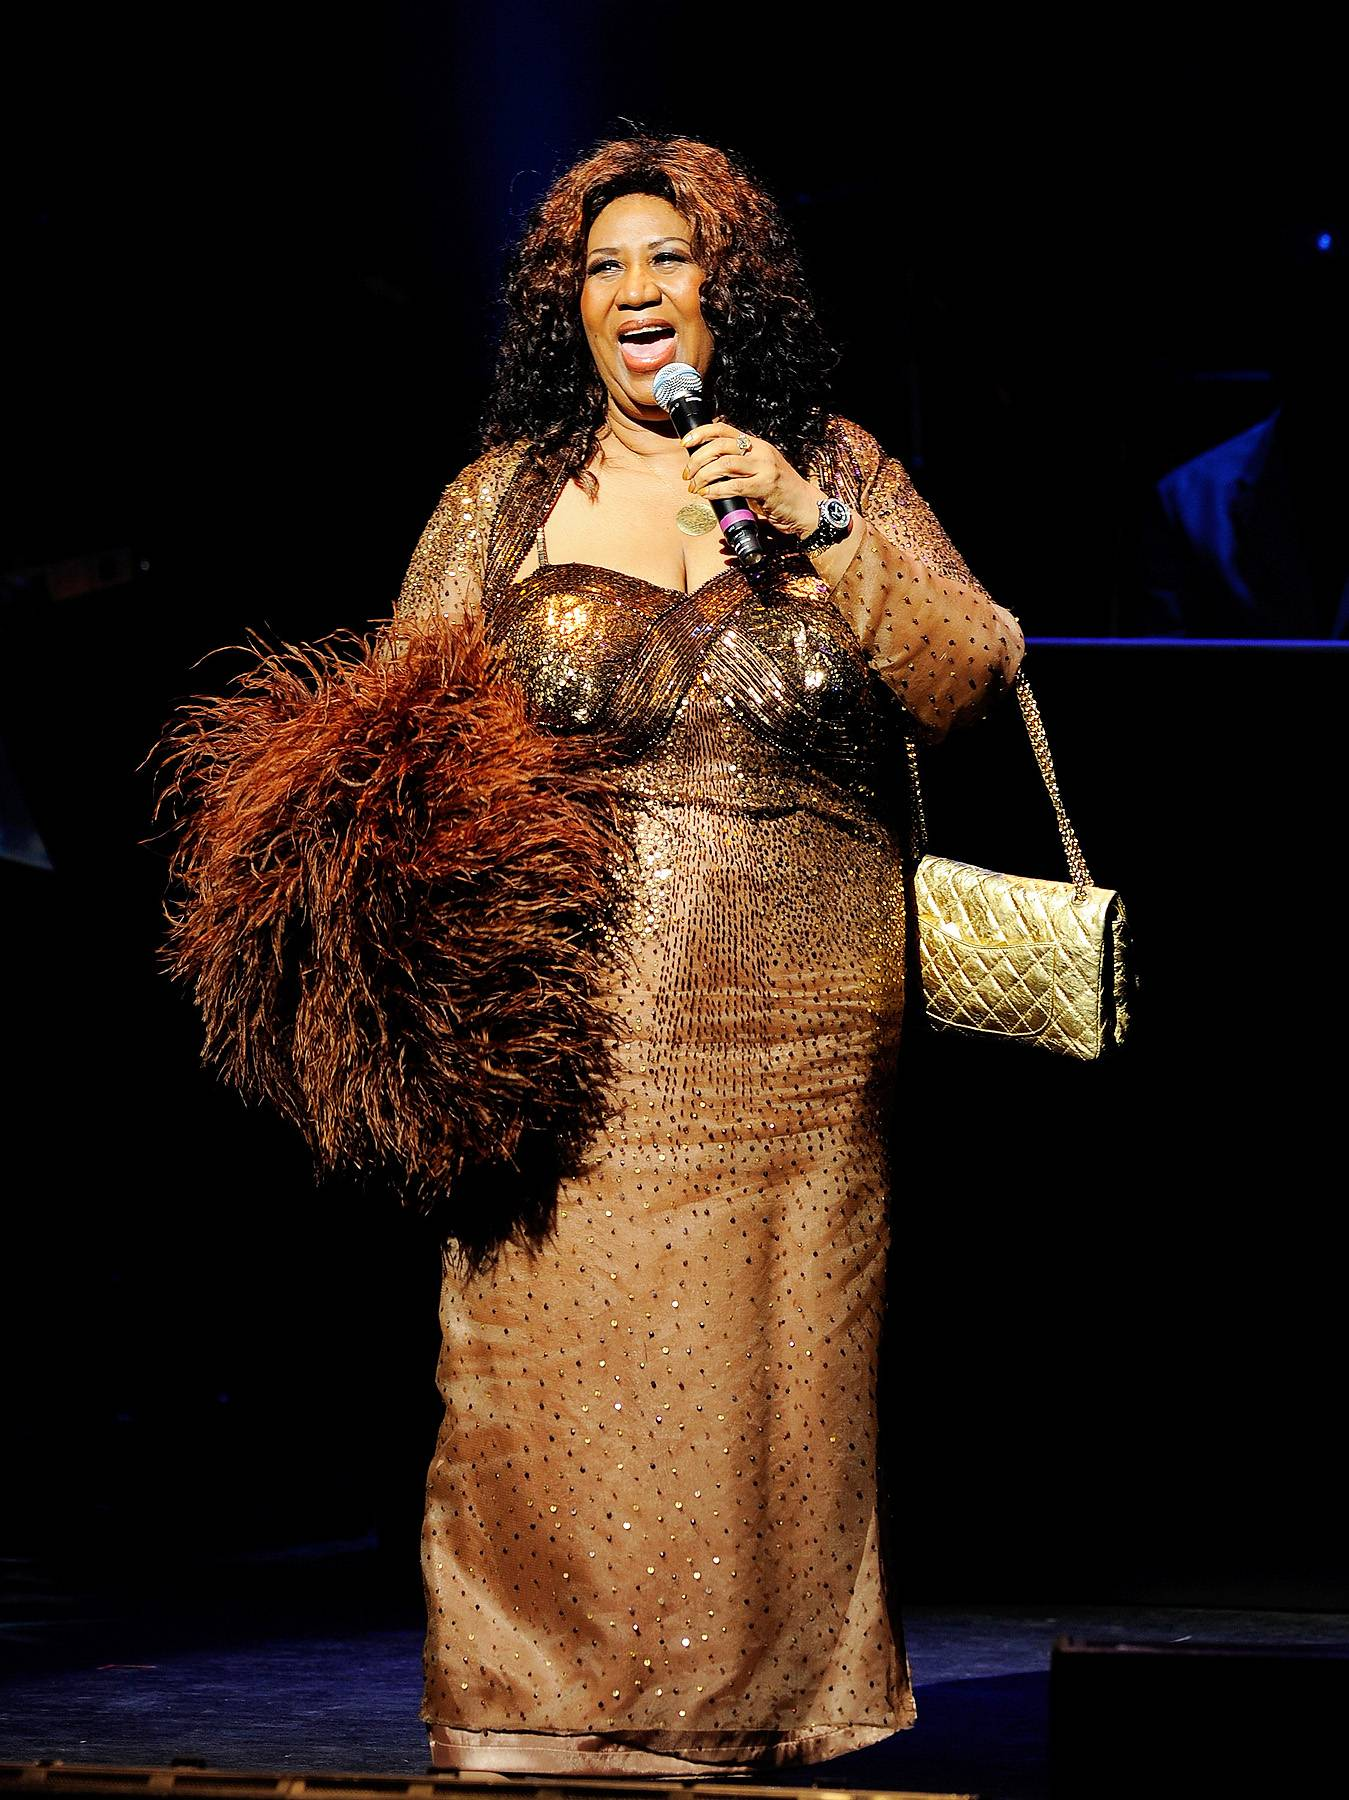 """Aretha Franklin - Aretha Franklin is the """"Queen of Soul"""" and has graced the Apollo stage with her presence, performance and amazing vocals over the years. It's only right, she's a legend!(Photo: Jemal Countess/Getty Images)"""